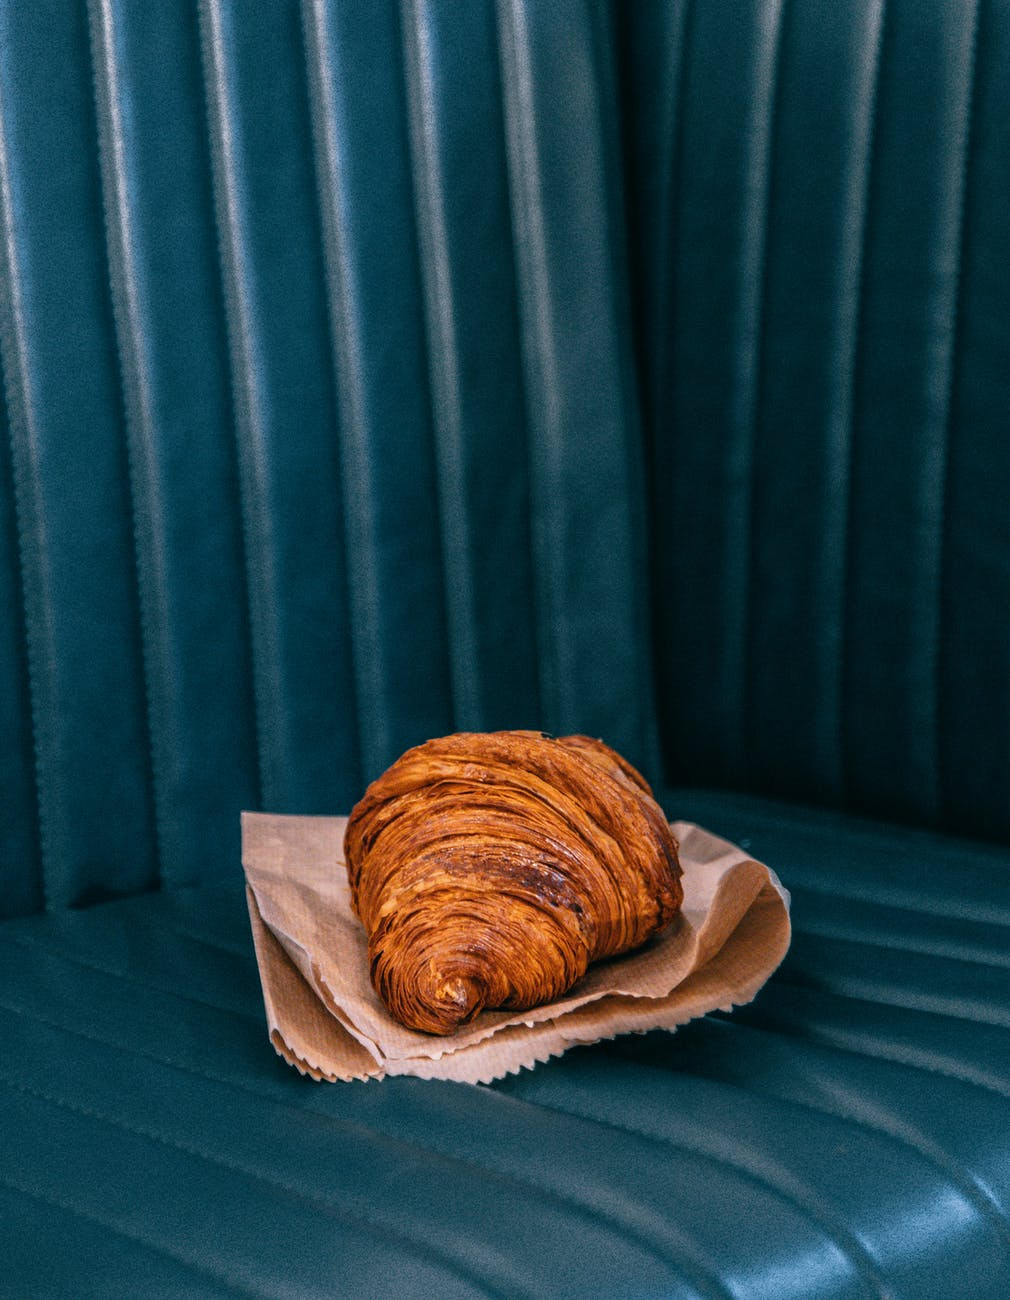 fresh delicious croissant on leather seat